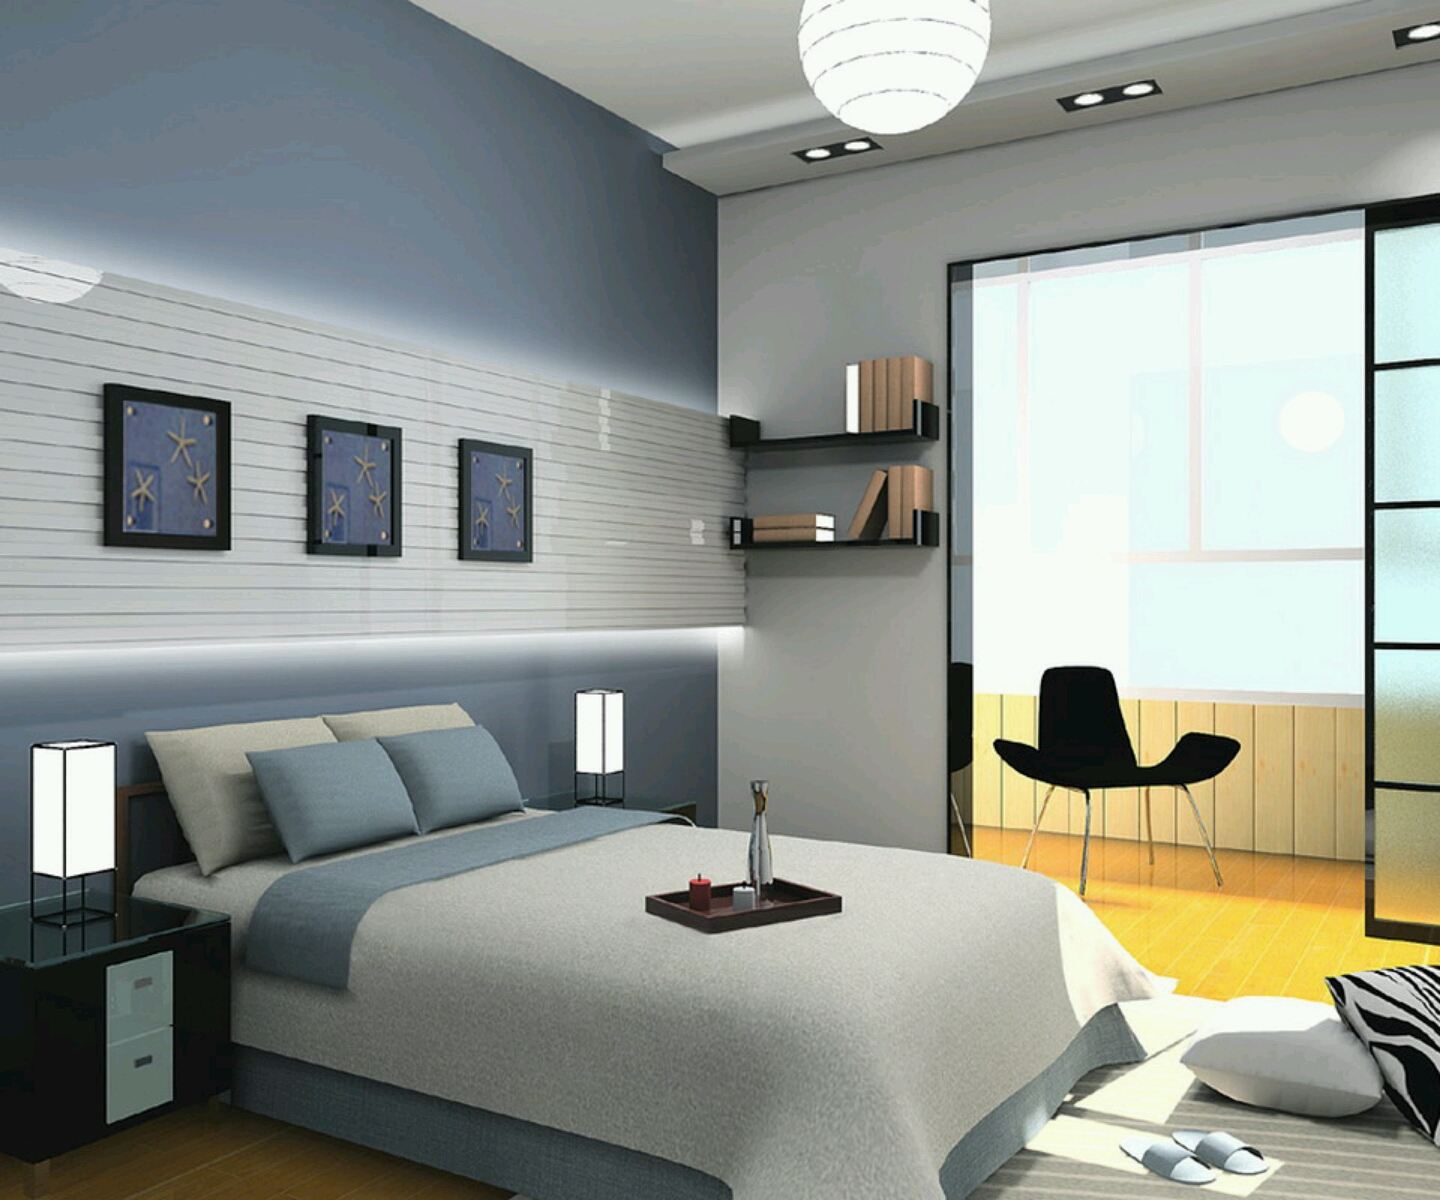 Modern homes bedrooms designs best bedrooms designs ideas. - Diy ...